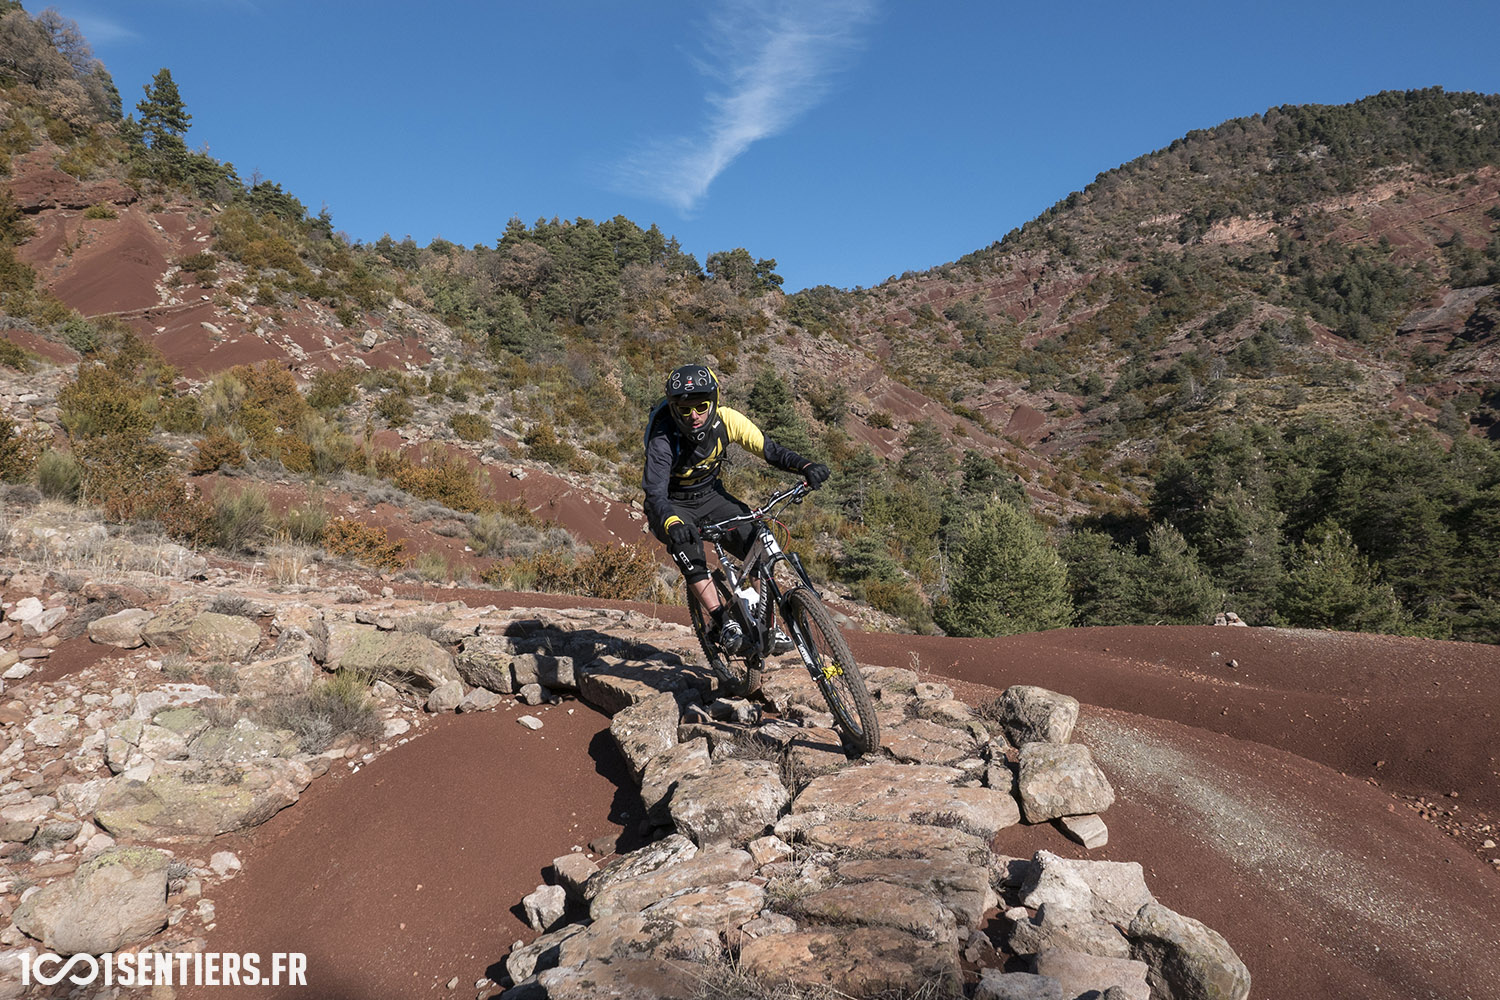 1001sentiers-session-enduro-alpes-maritimes-vtt-p1100297